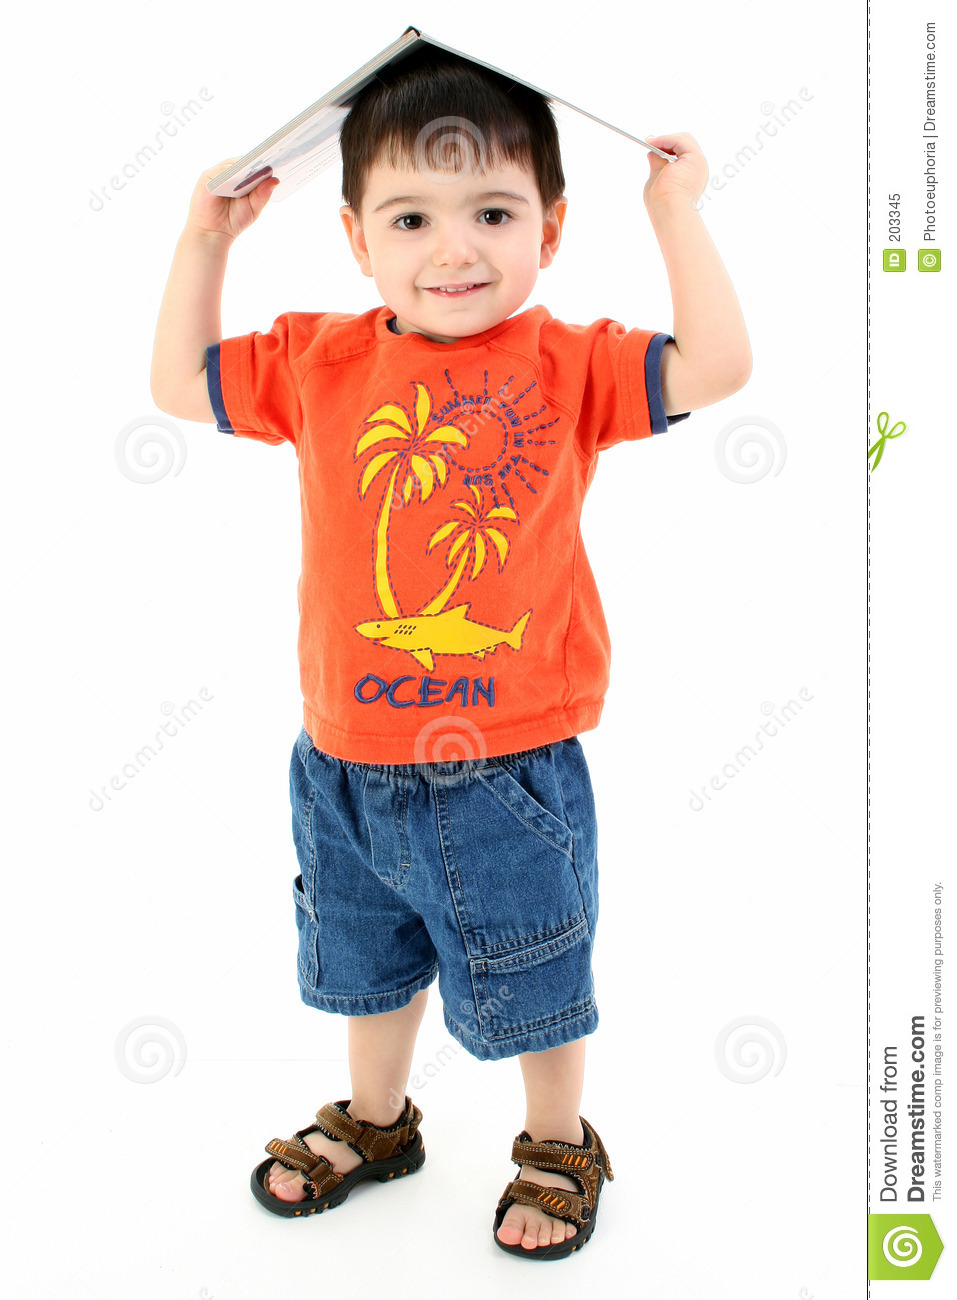 Adorable Toddler Boy With Book On Head